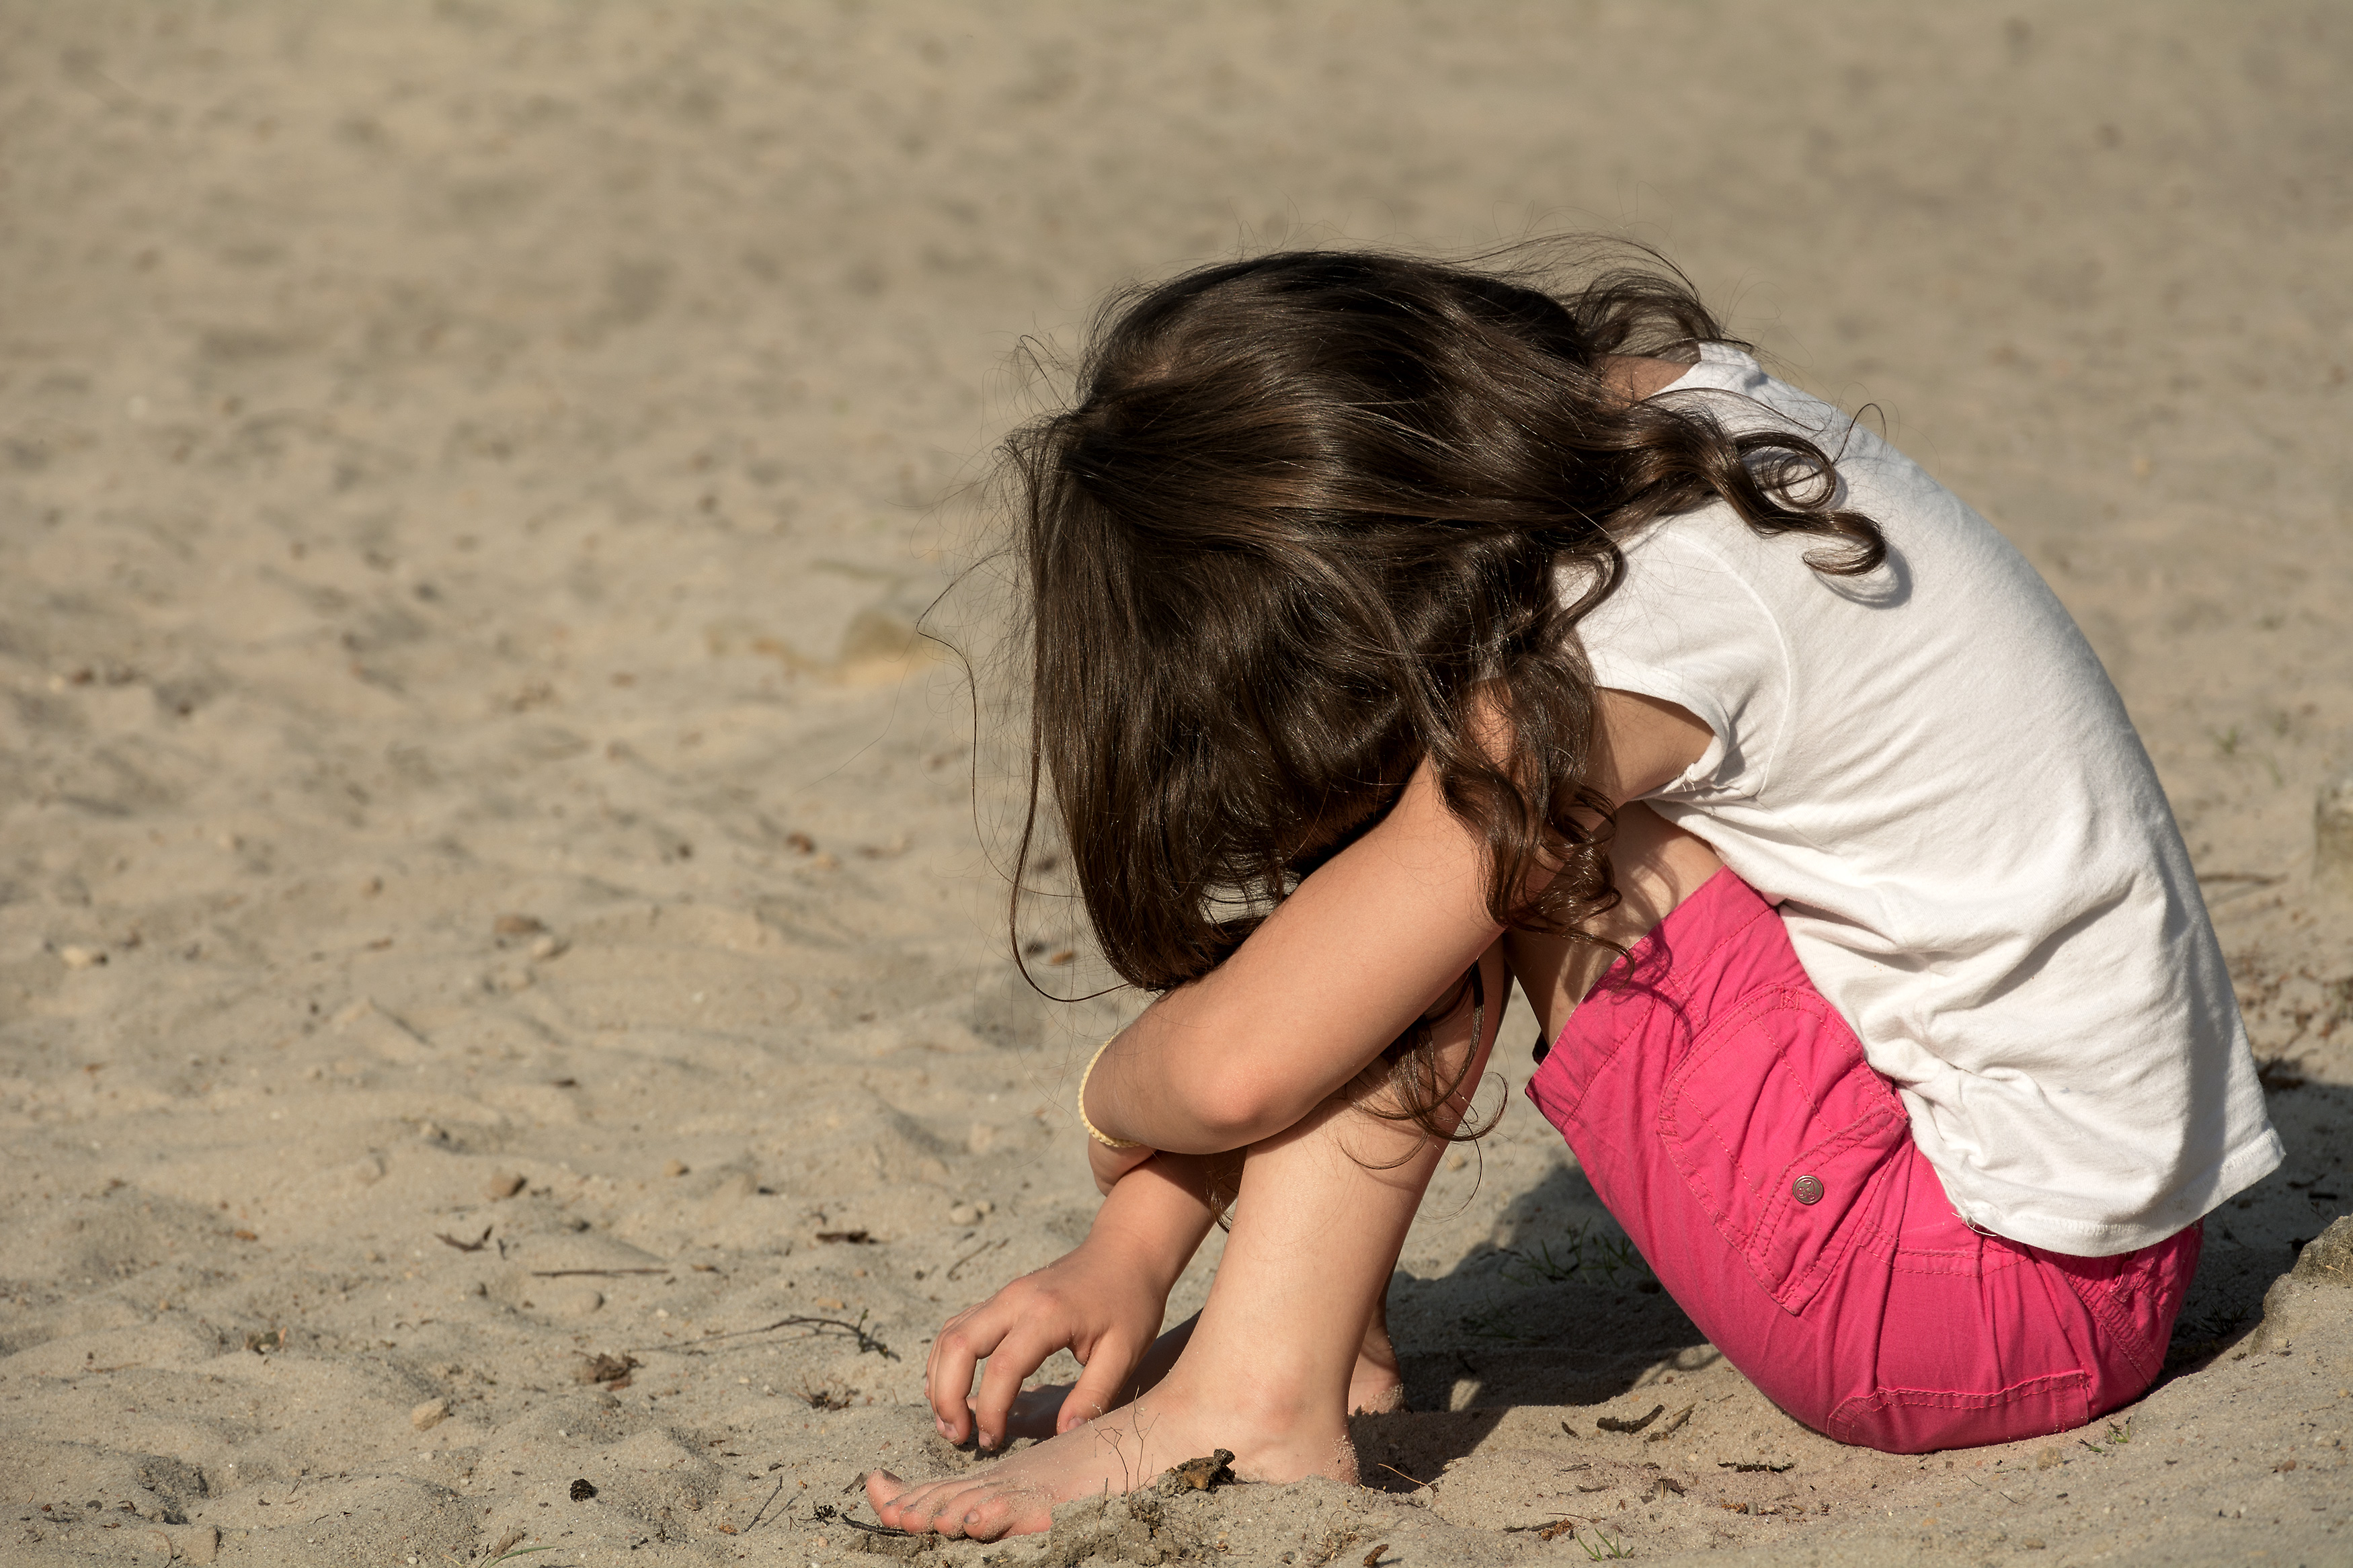 Small sad girl on the beach | Free Stock Photo | LibreShot